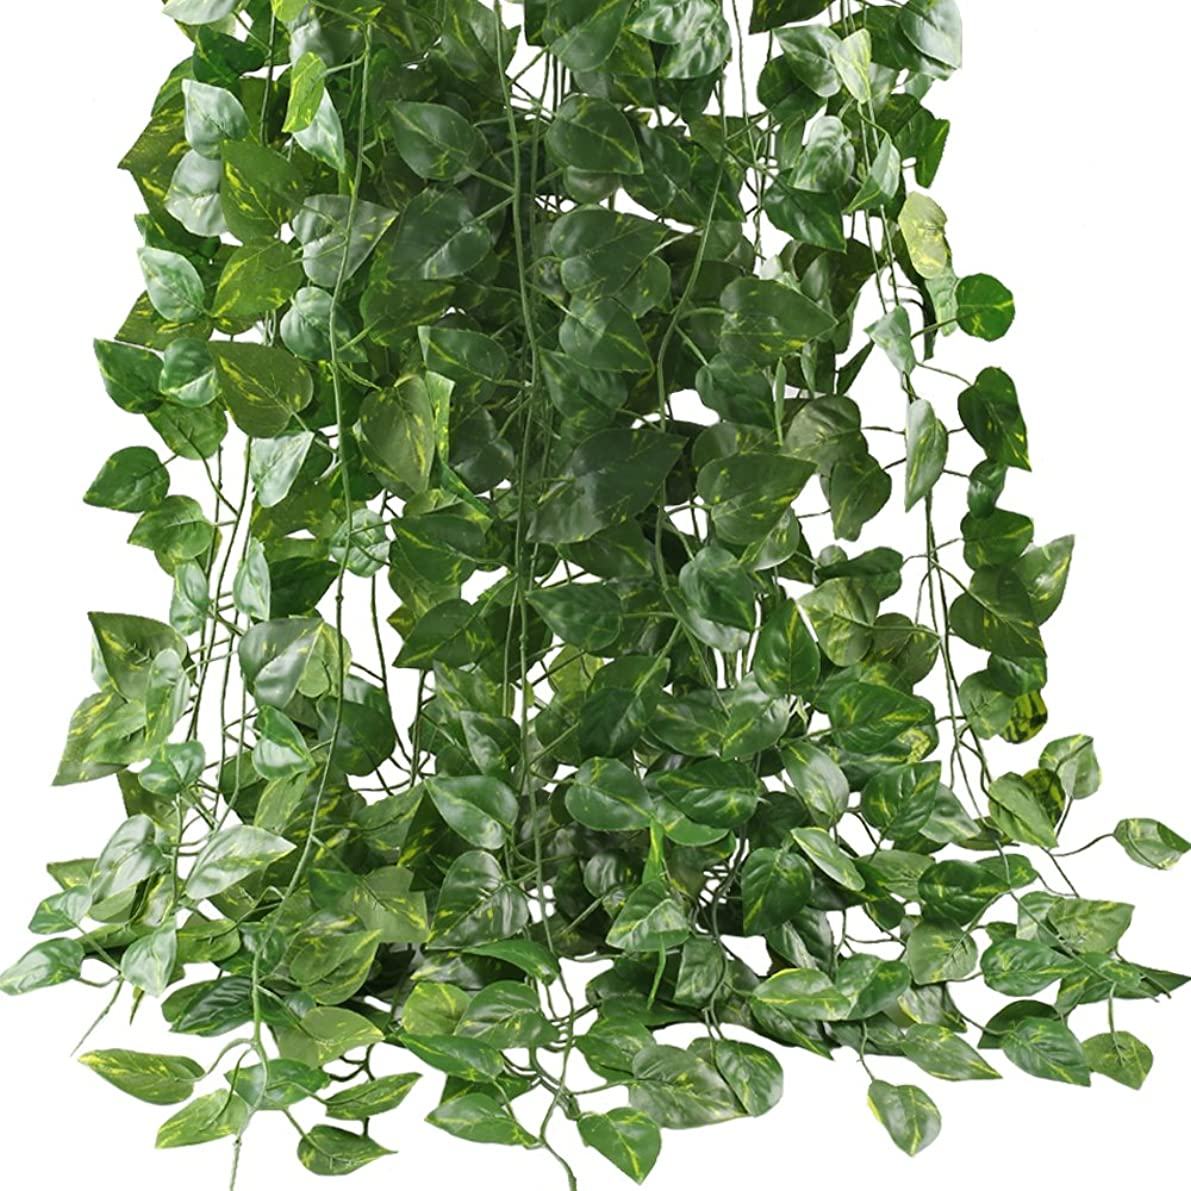 GTIDEA Fake Vines, 12 Pack 84 Feet Artificial Hanging Plants Silk Green Leaf Garlands Home Office Garden Outdoor Wall Greenery Cover Jungle Party Decoration